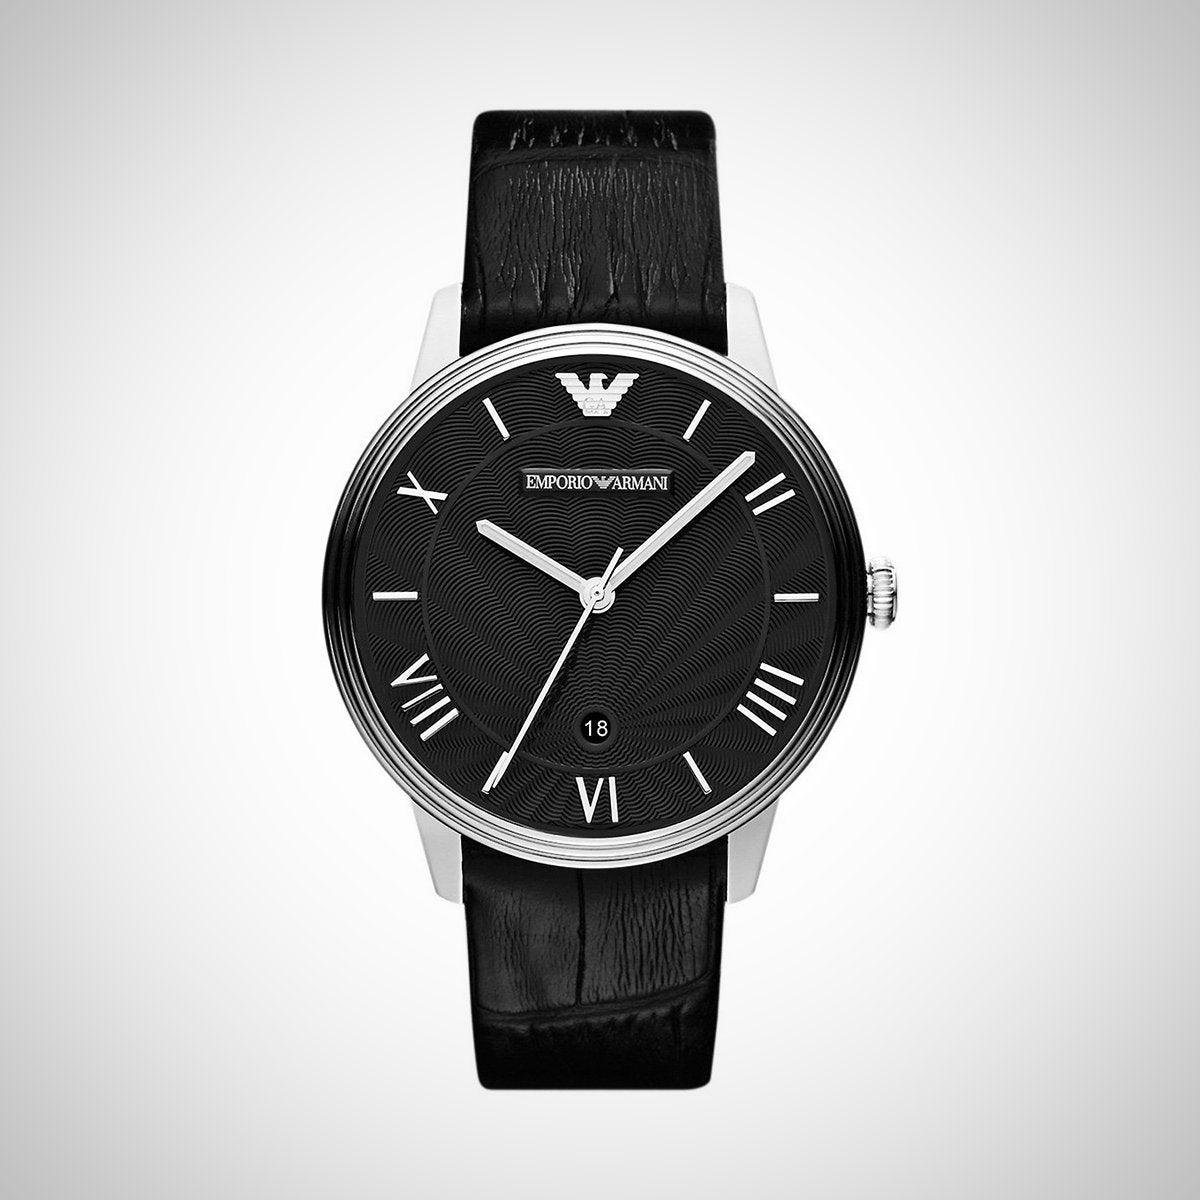 Emporio Armani AR1611 Black Dial Black Leather Men's Watch